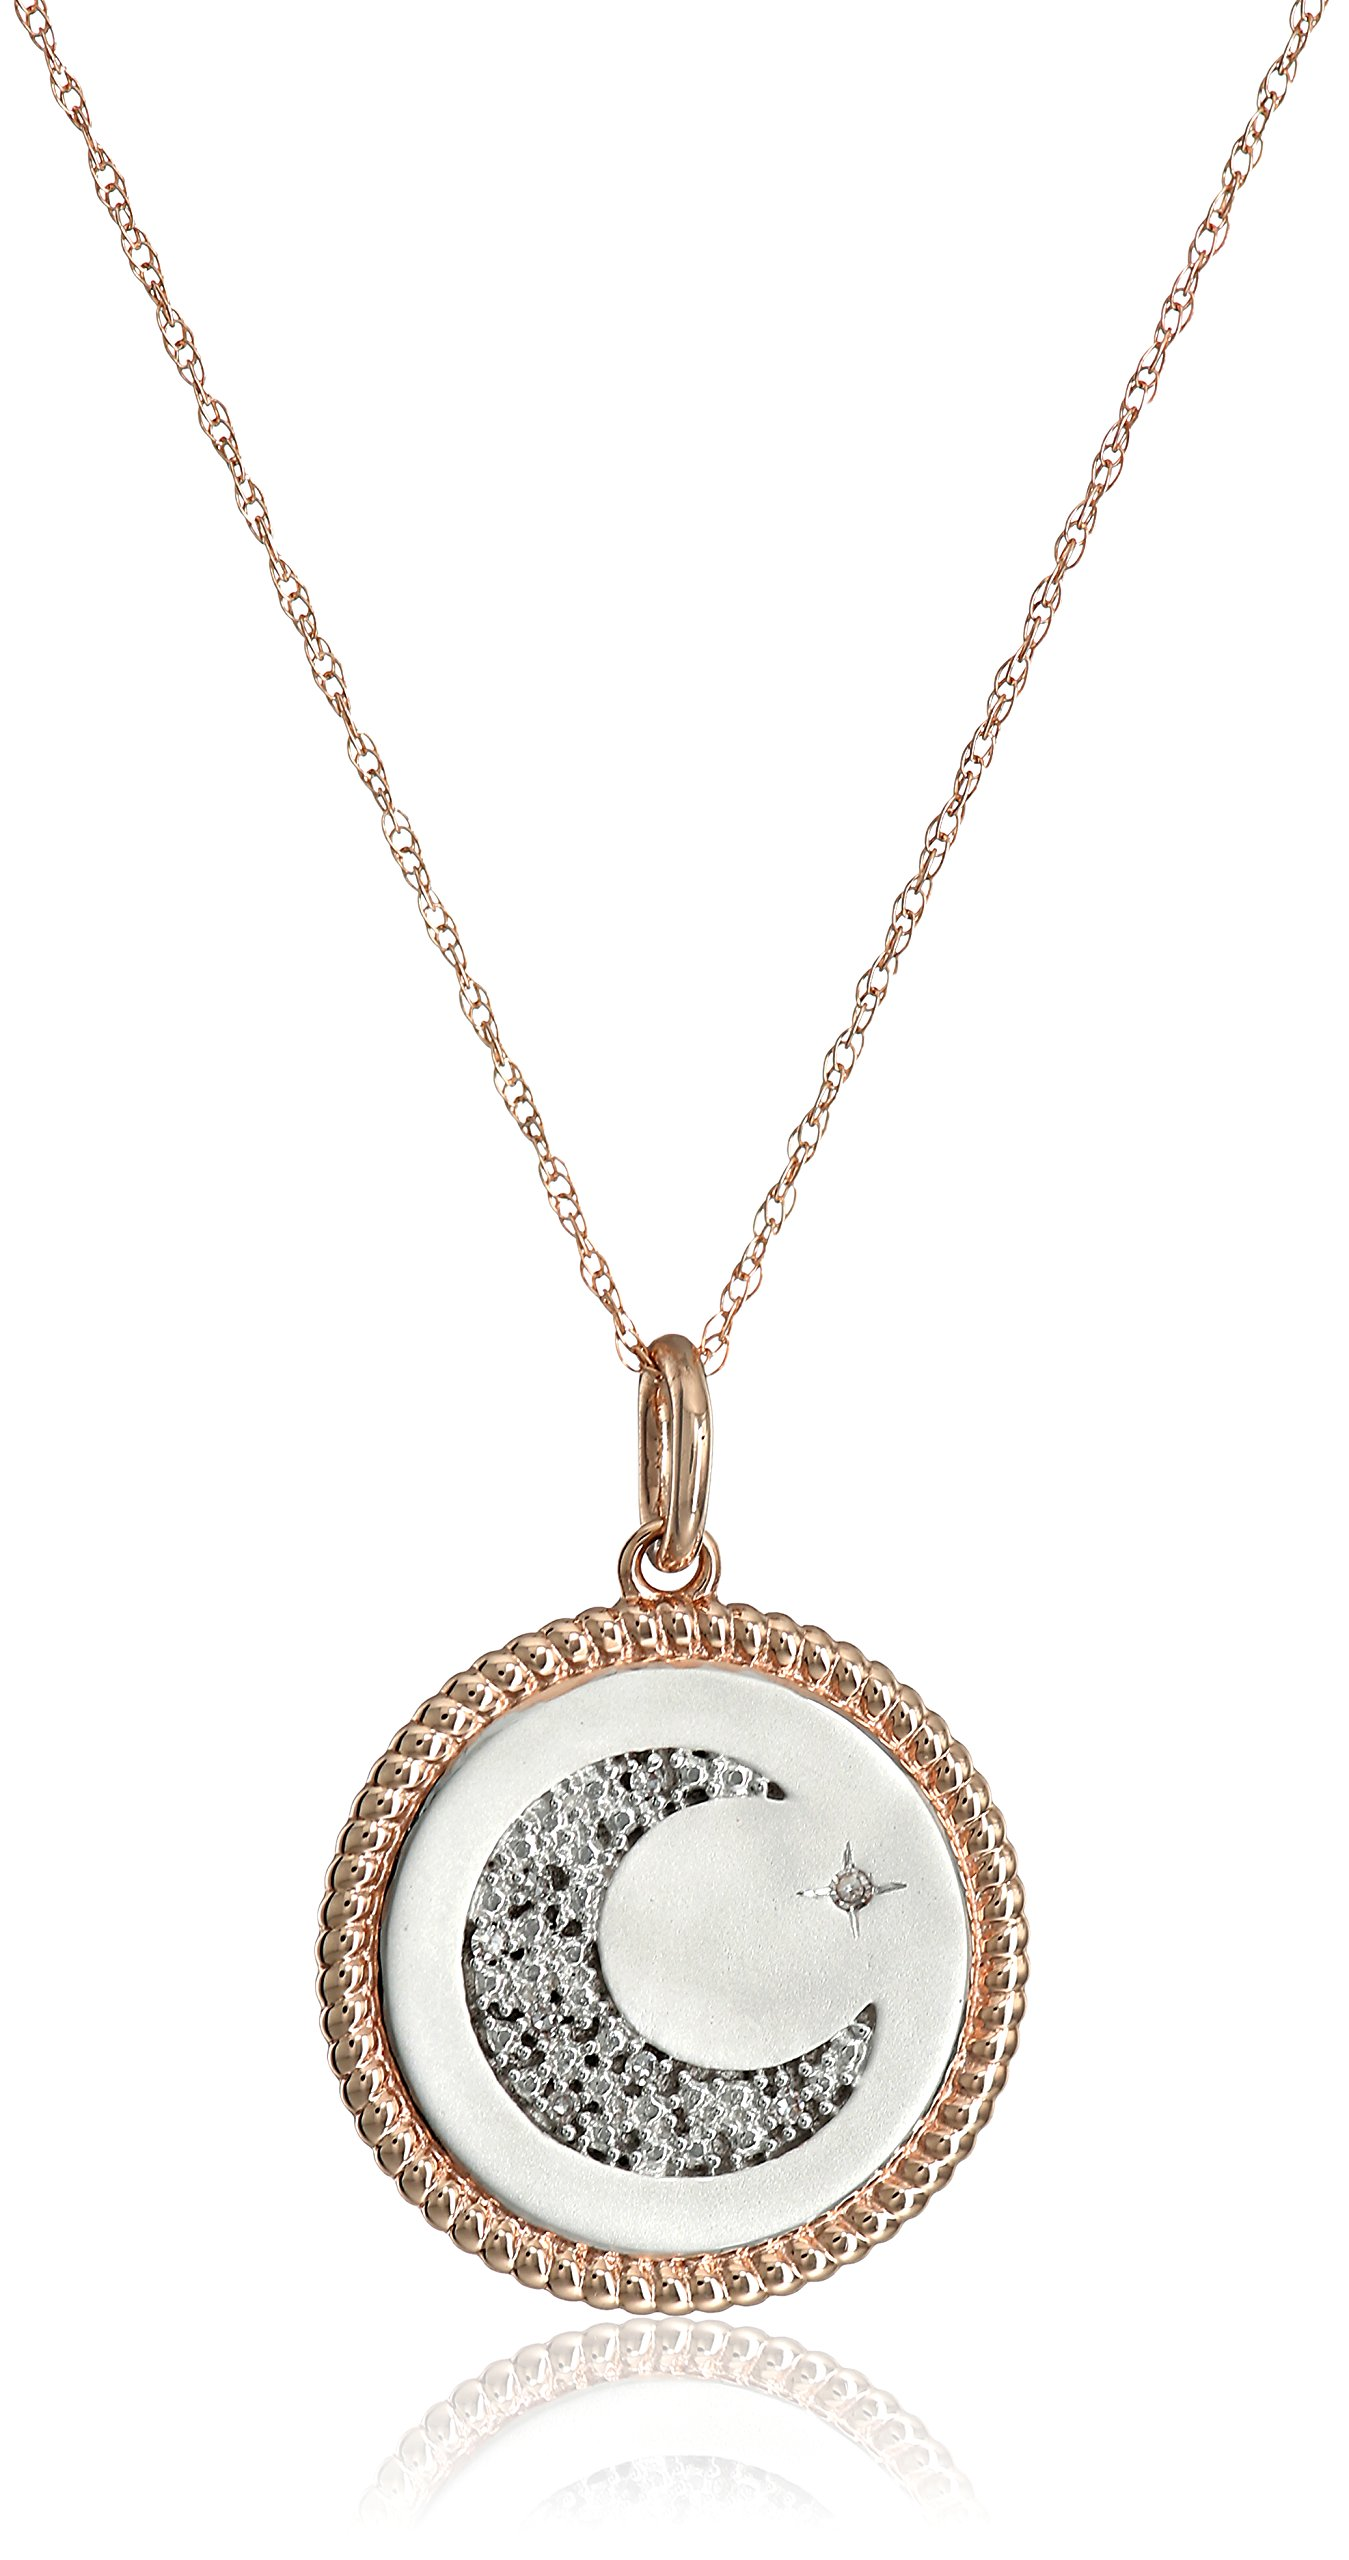 10k Rose Gold Diamond Accent ''I Love You To The Moon and Back'' Pendant Necklace, 18'' by Amazon Collection (Image #1)